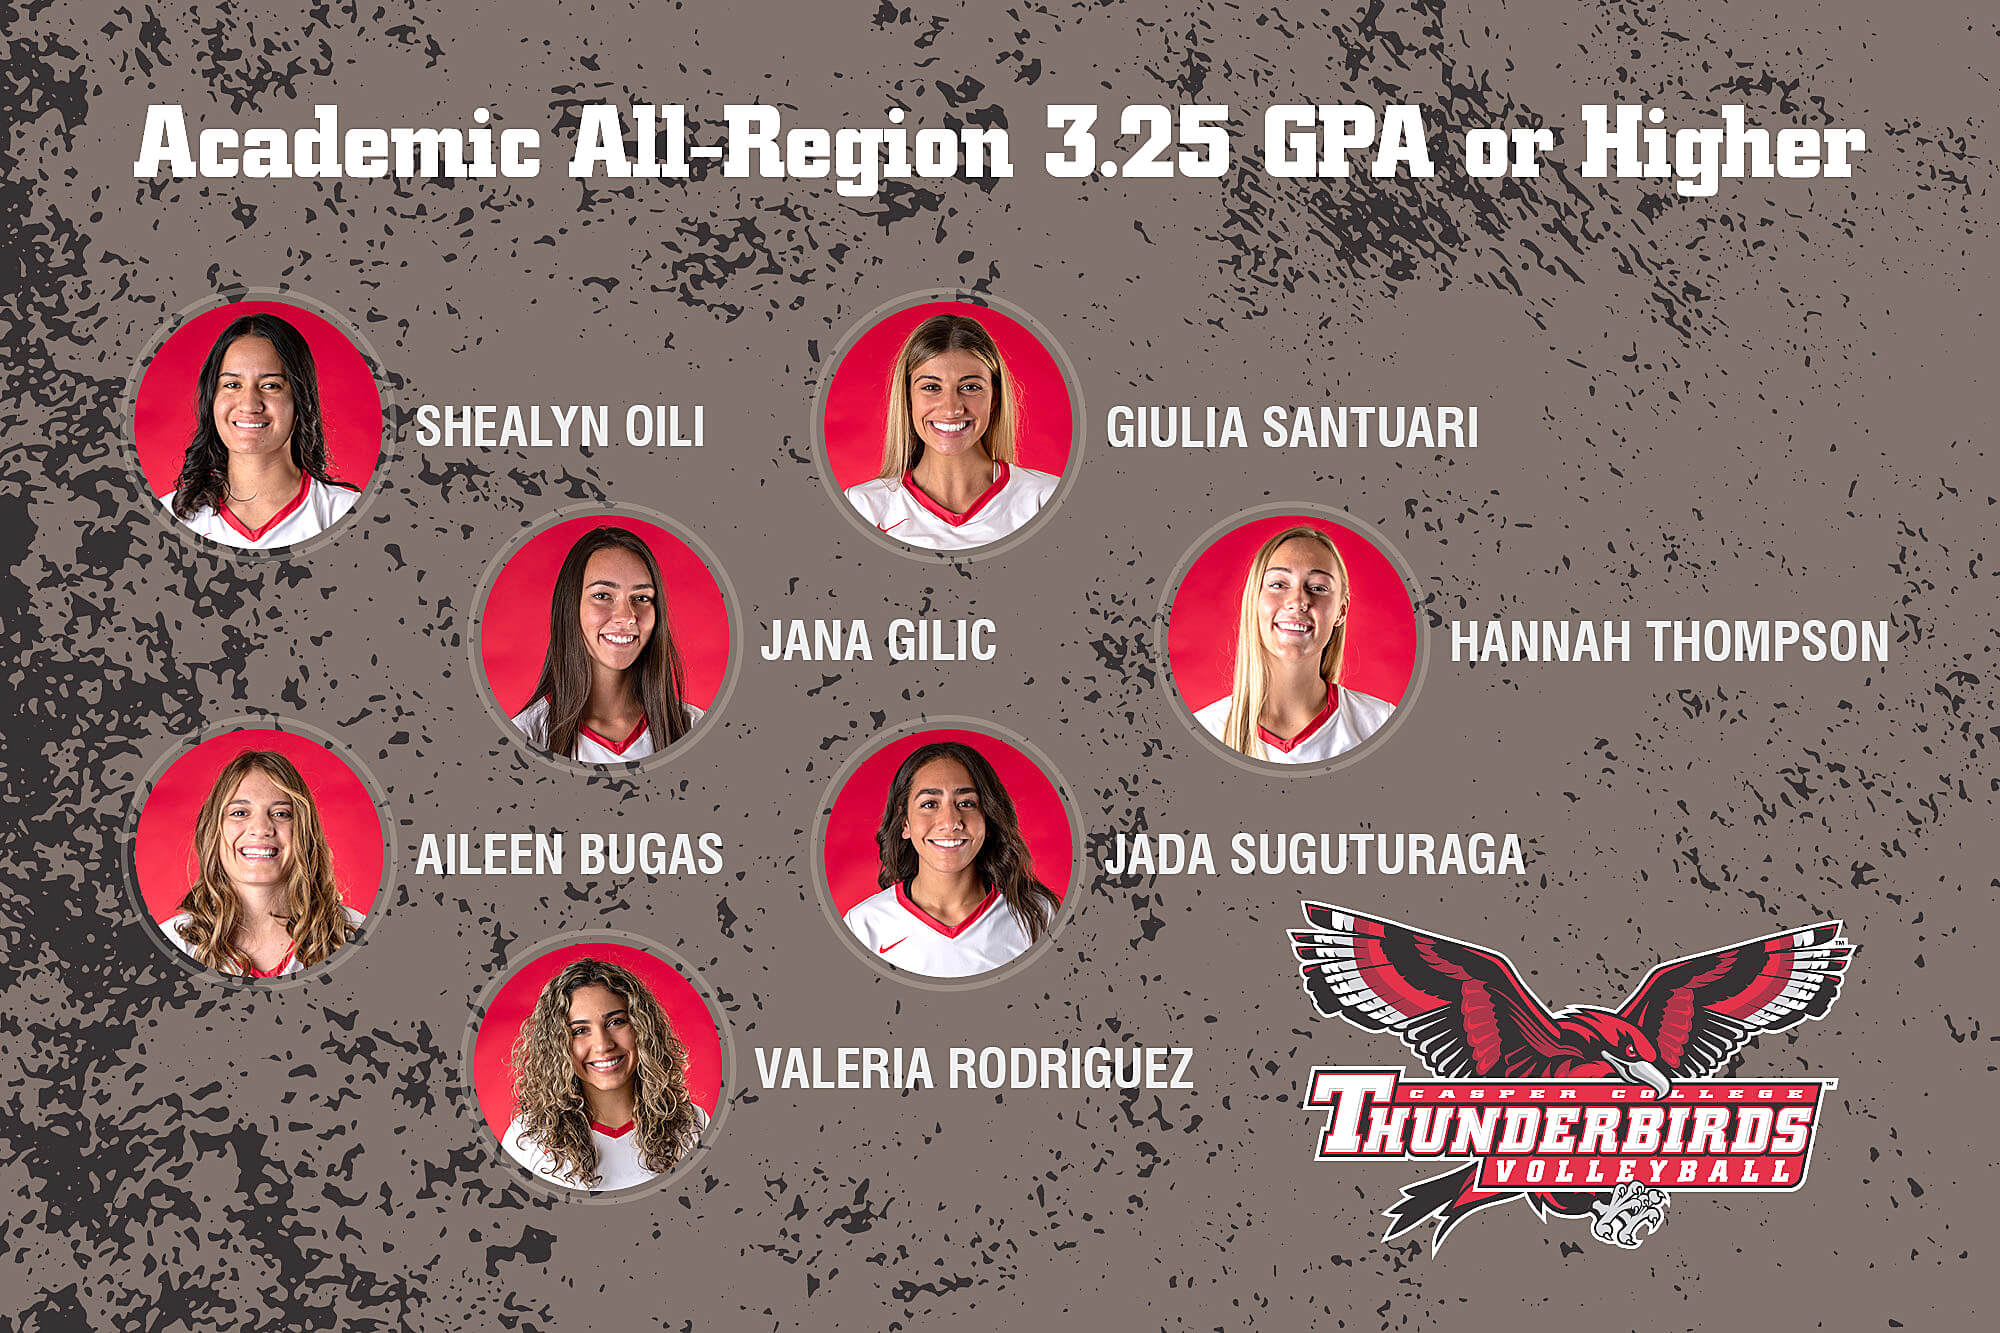 Image for volleyball academic honors release.